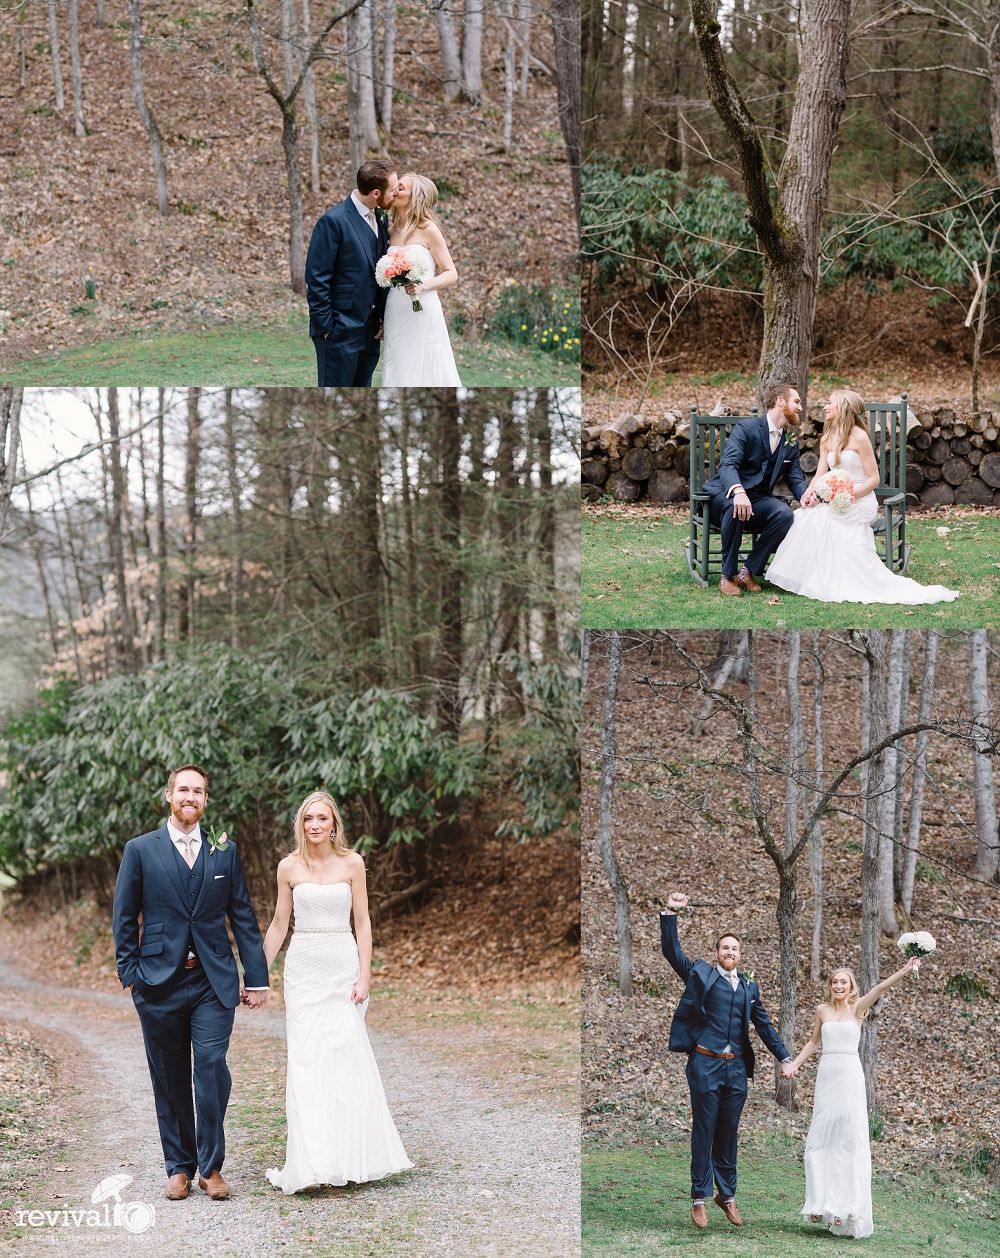 A simple and beautiful Springtime ceremony at the historic Mast Farm Inn in Valle Crucis, NC Vintage Inspired Elopement Photos by Revival Photography www.revivalphotography.com